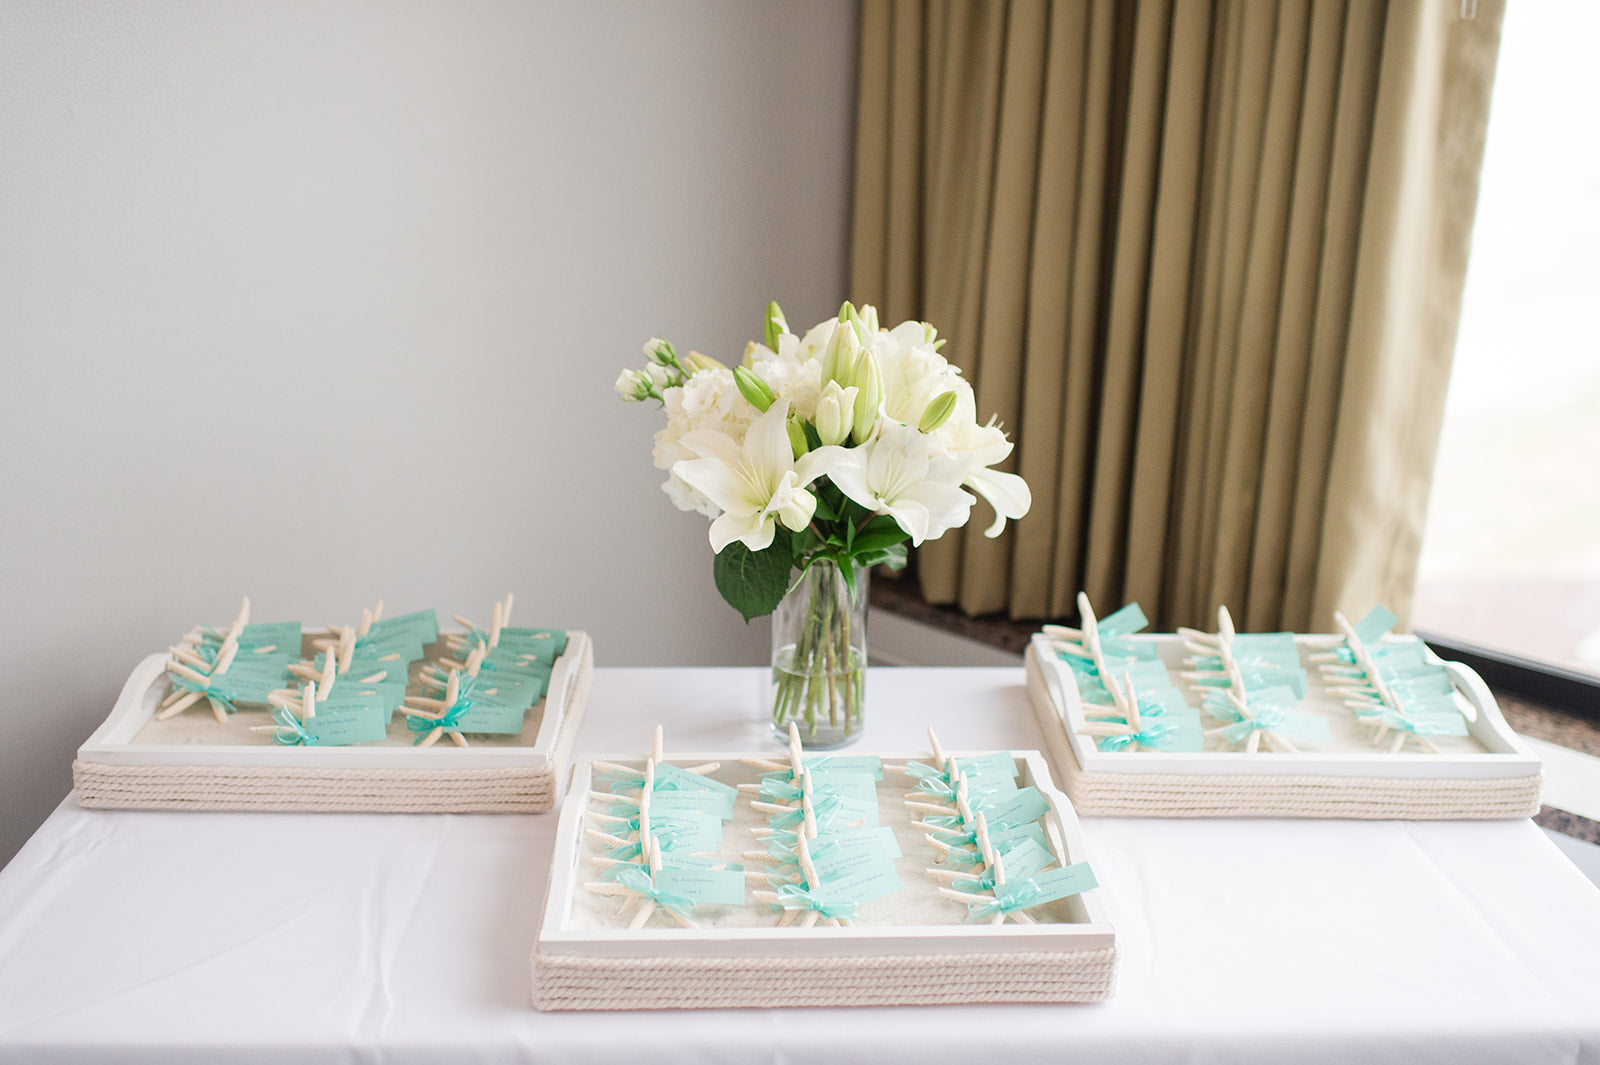 Little Miss Lovely Floral Design // Salero wedding Rehoboth Beach DE // Teal and Ivory Wedding Flowers